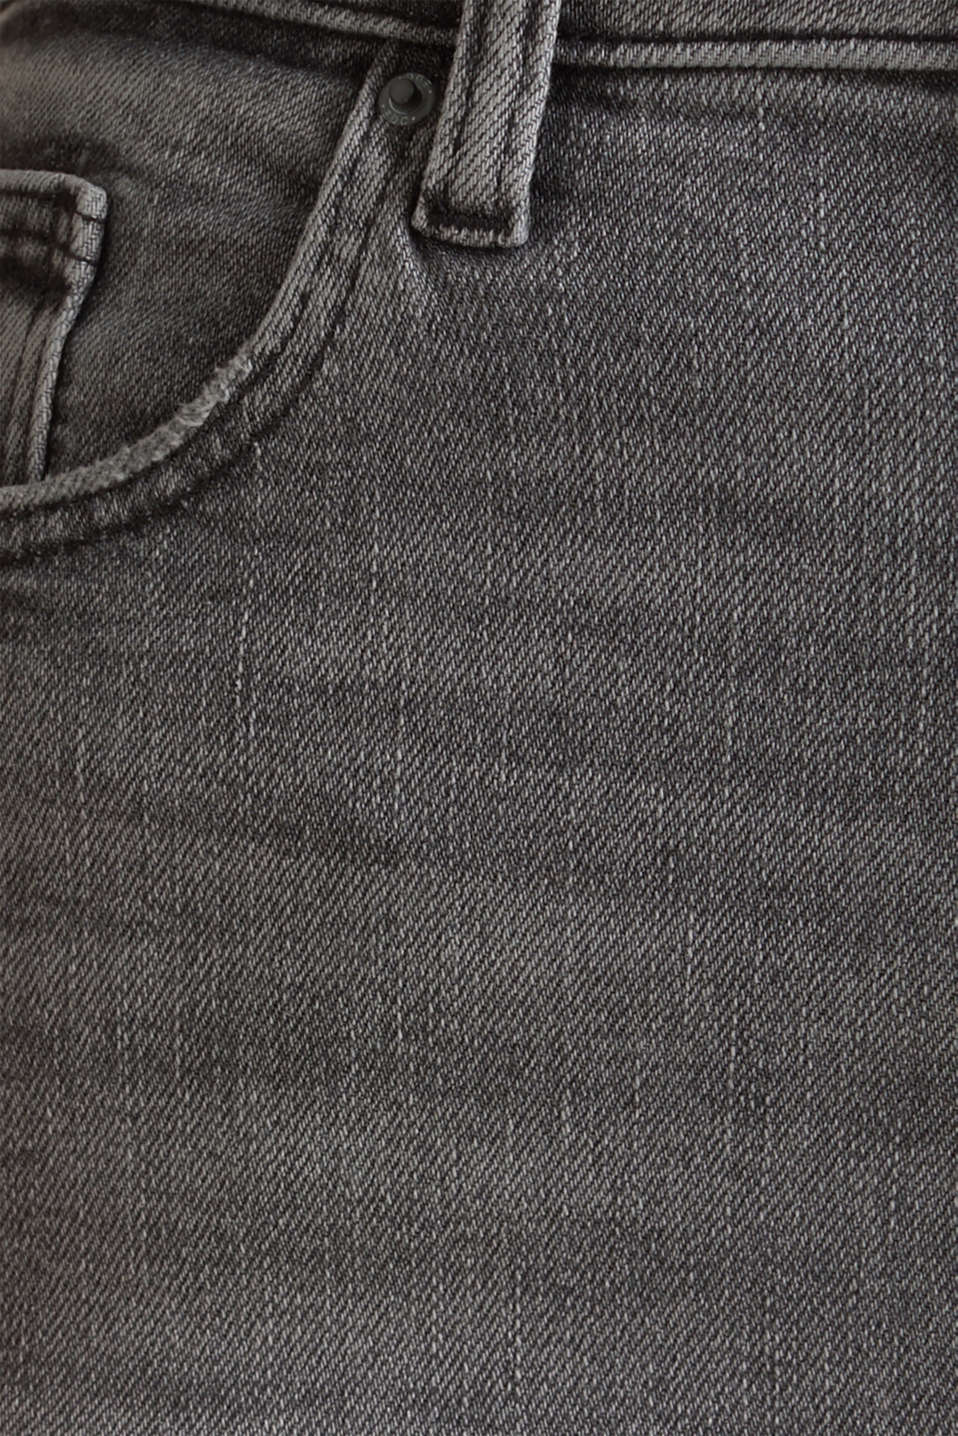 Basic jeans with an extra high rise waistband, BLACK LIGHT WASH, detail image number 4